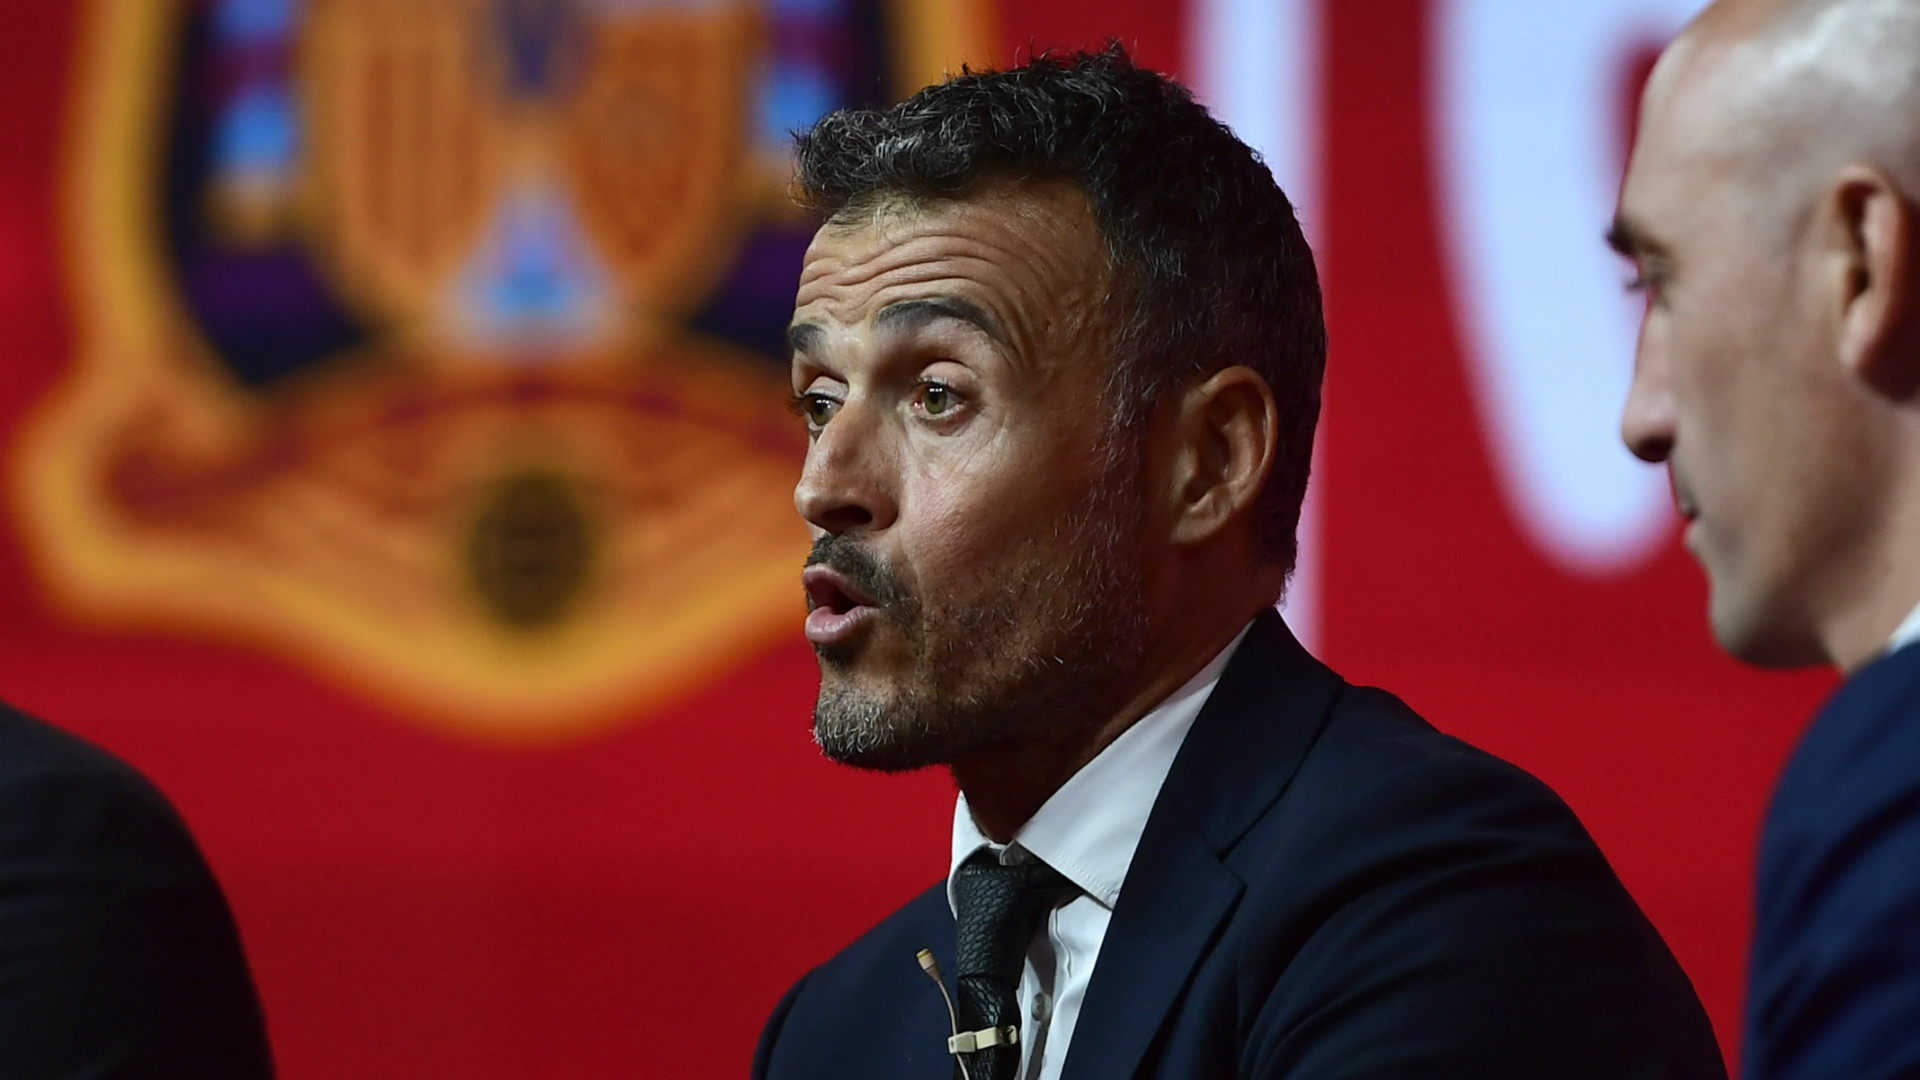 Luis Enrique: Spain must 'evolve and stop being predictable'